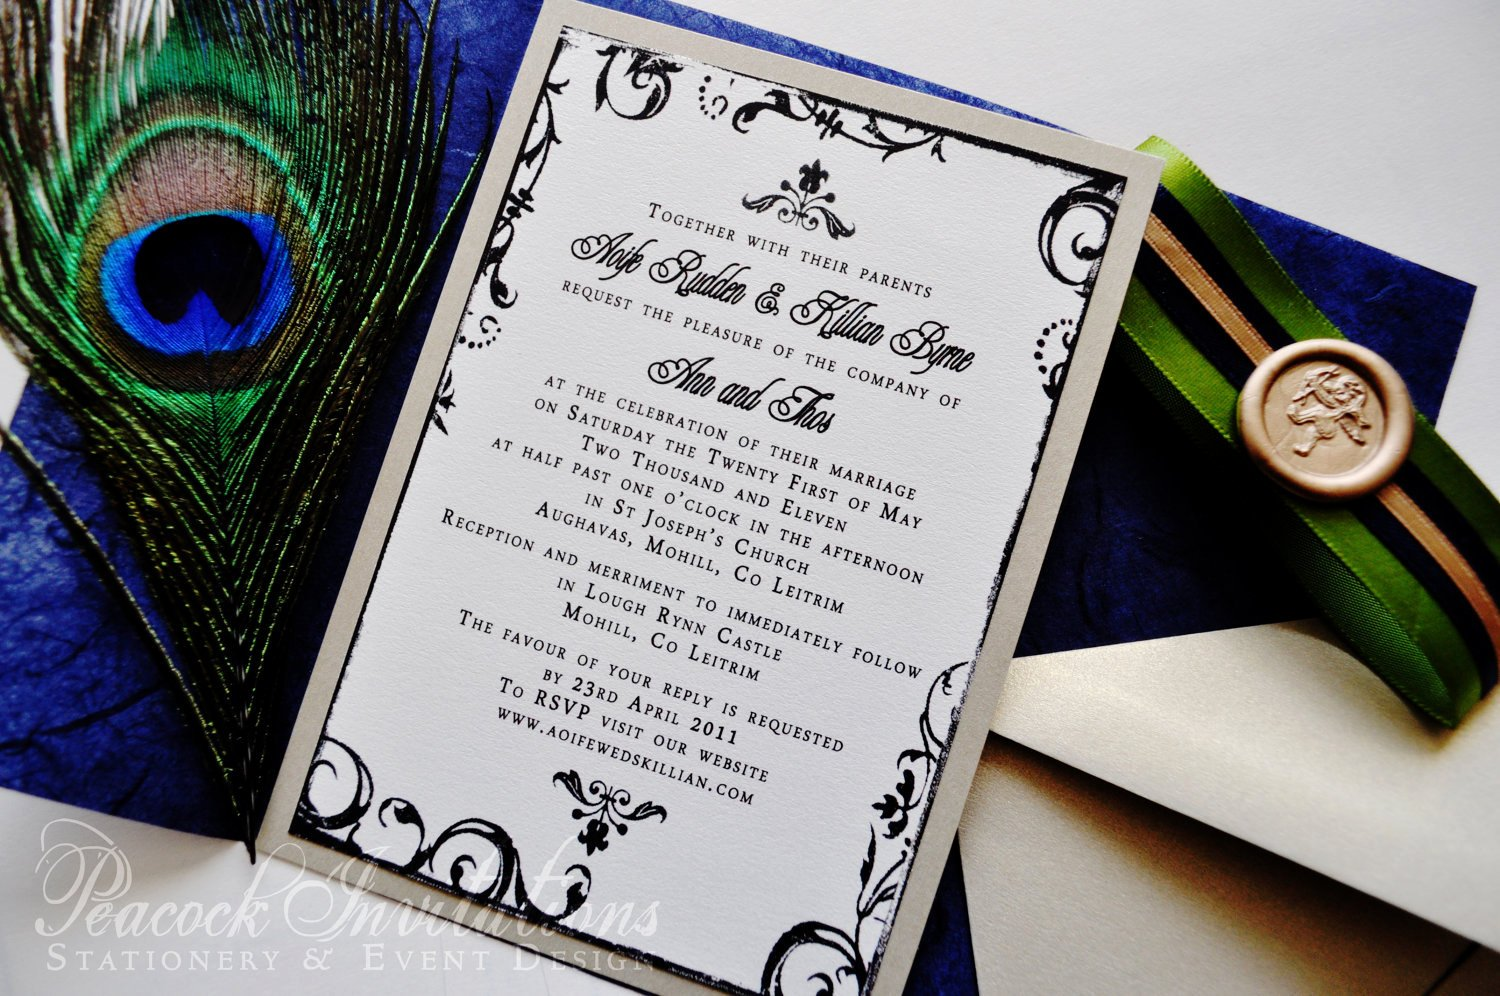 Peacock themed Wedding Invitations Luxury sophie Paris Rustic French Peacock themed Wedding Invitations